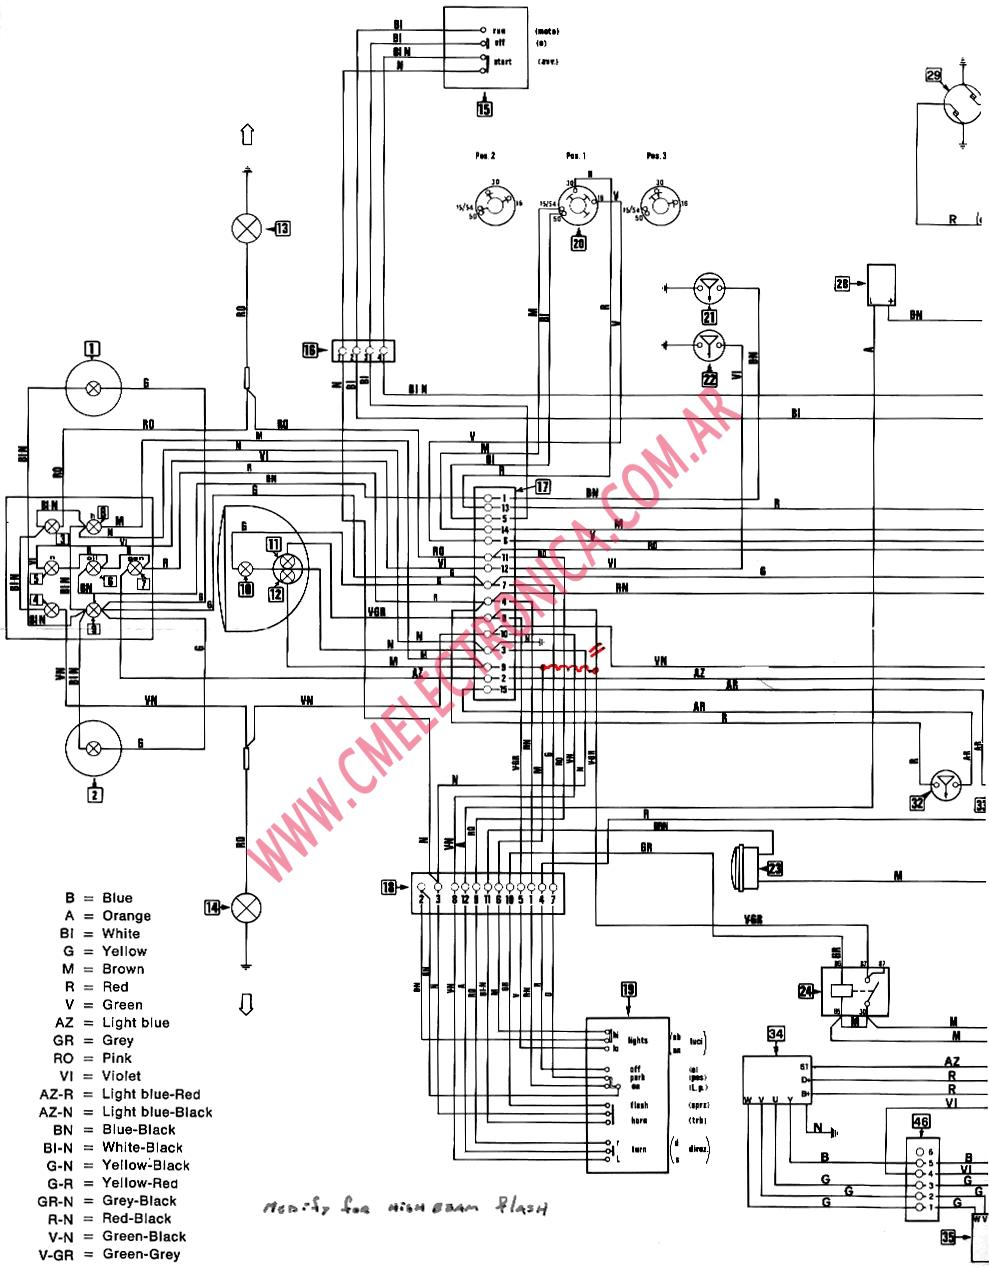 4 pin cdi ignition wiring diagram 4 pin cdi wire diagram 4 automotive wiring diagrams cdi wire diagram moto guzzi flasher